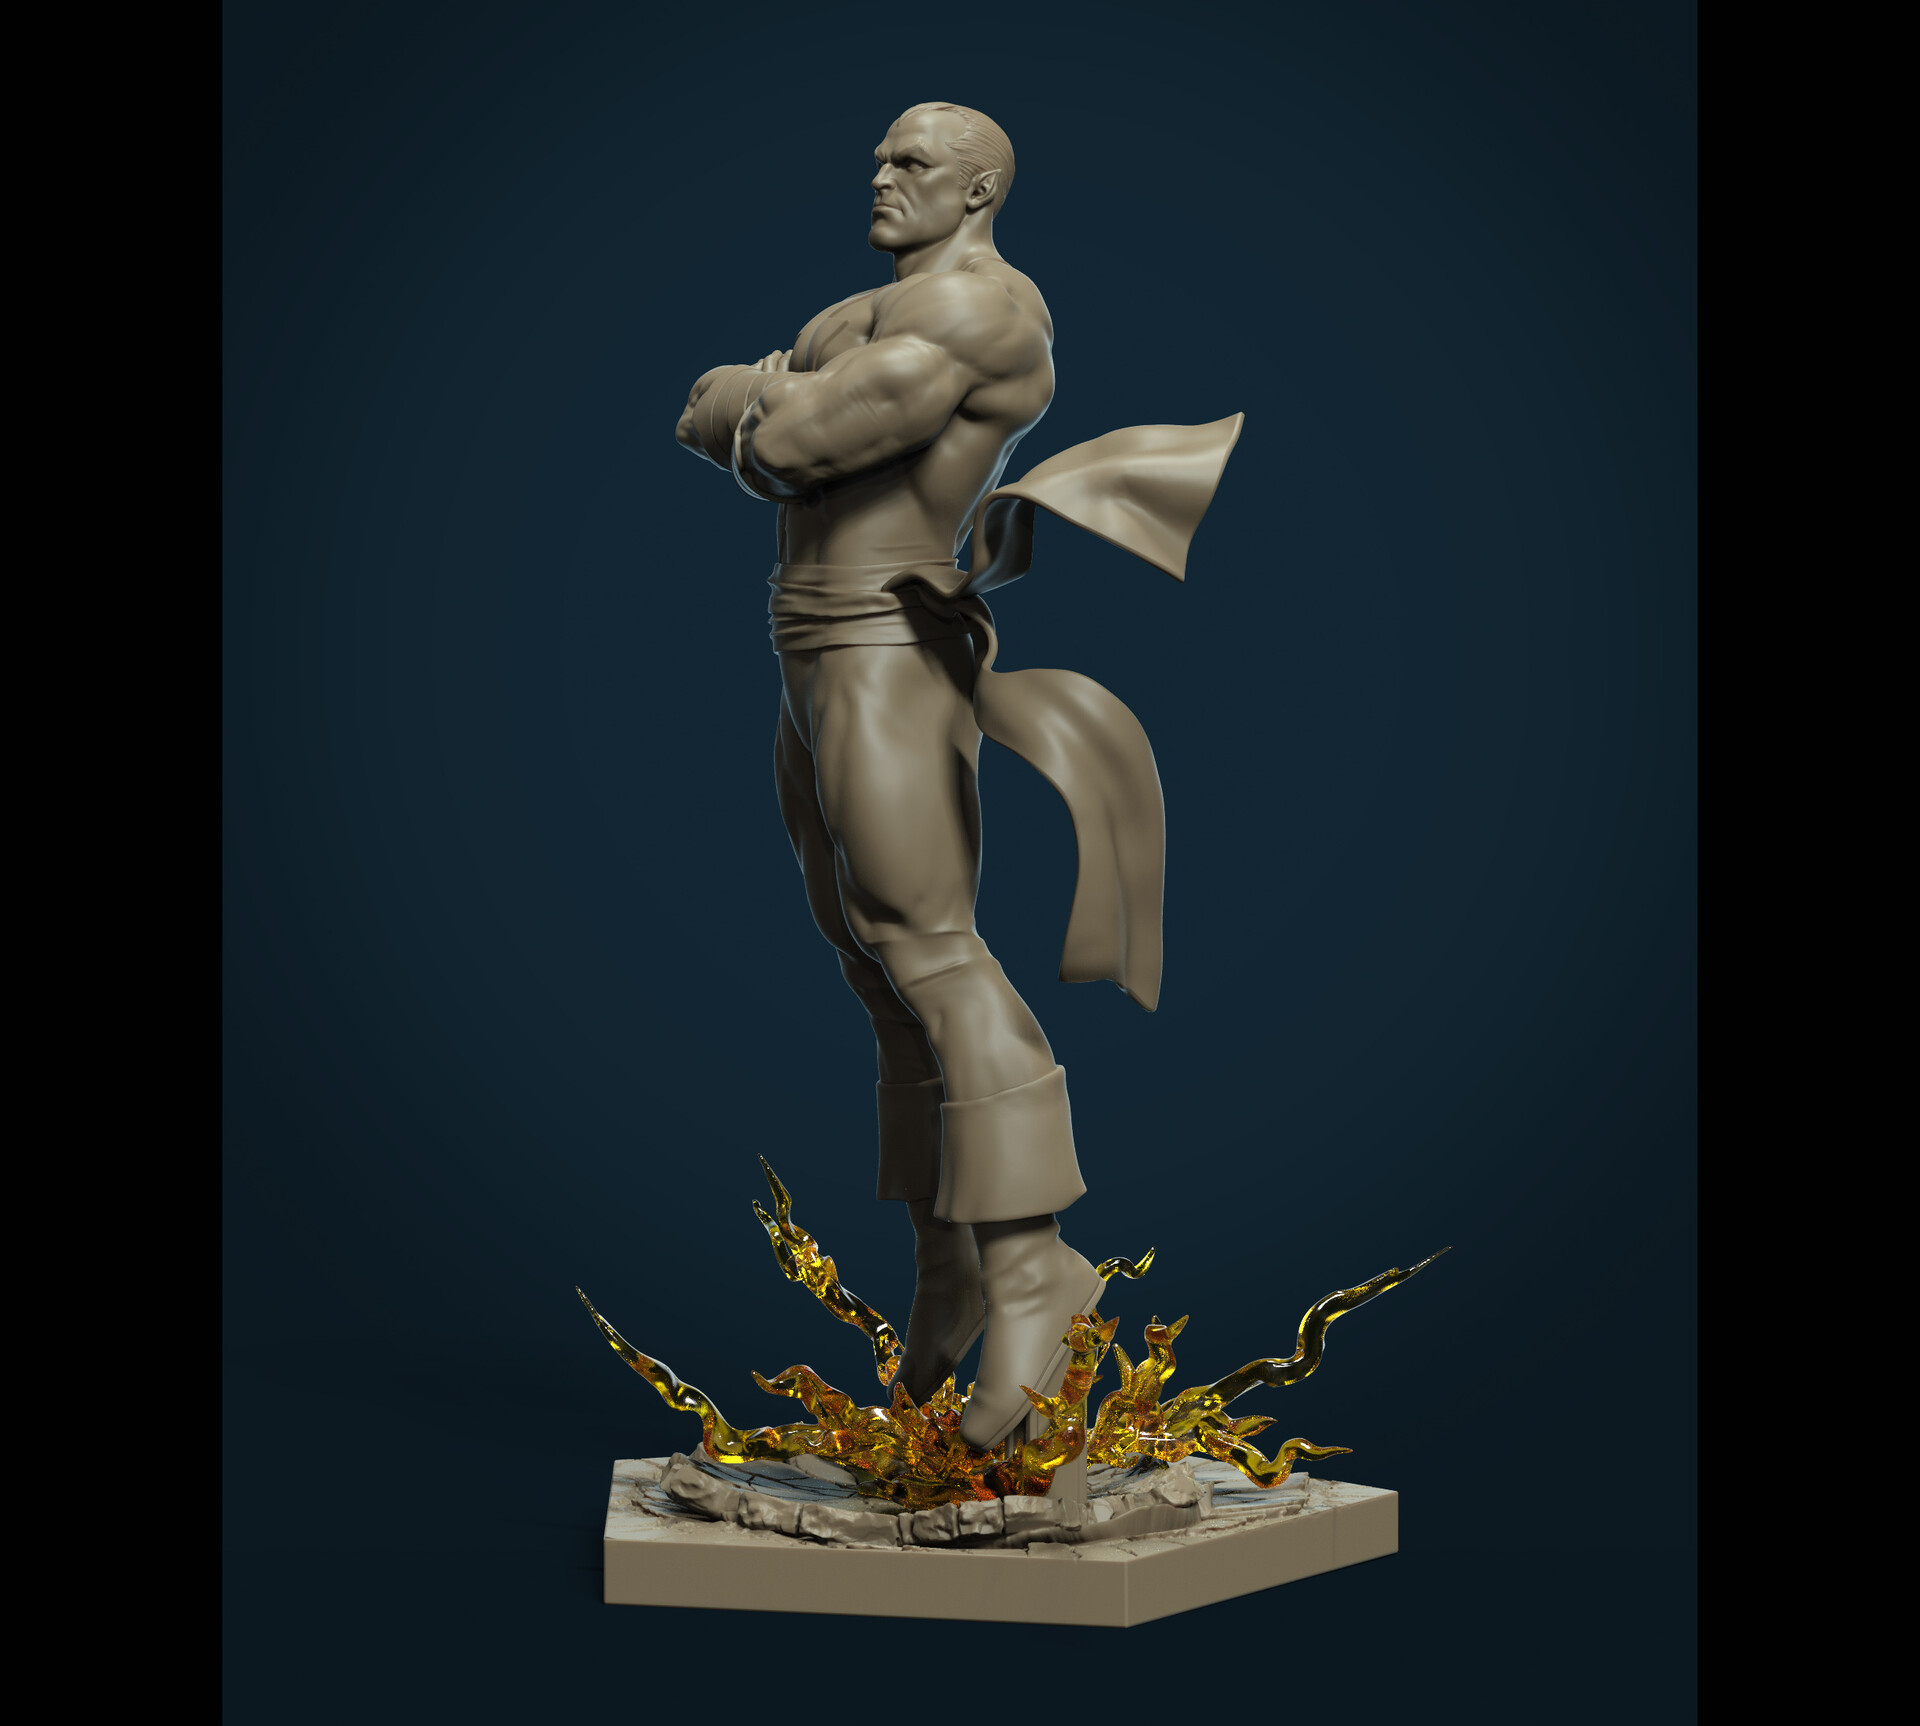 Victor hugo sousa blackadam clay 03